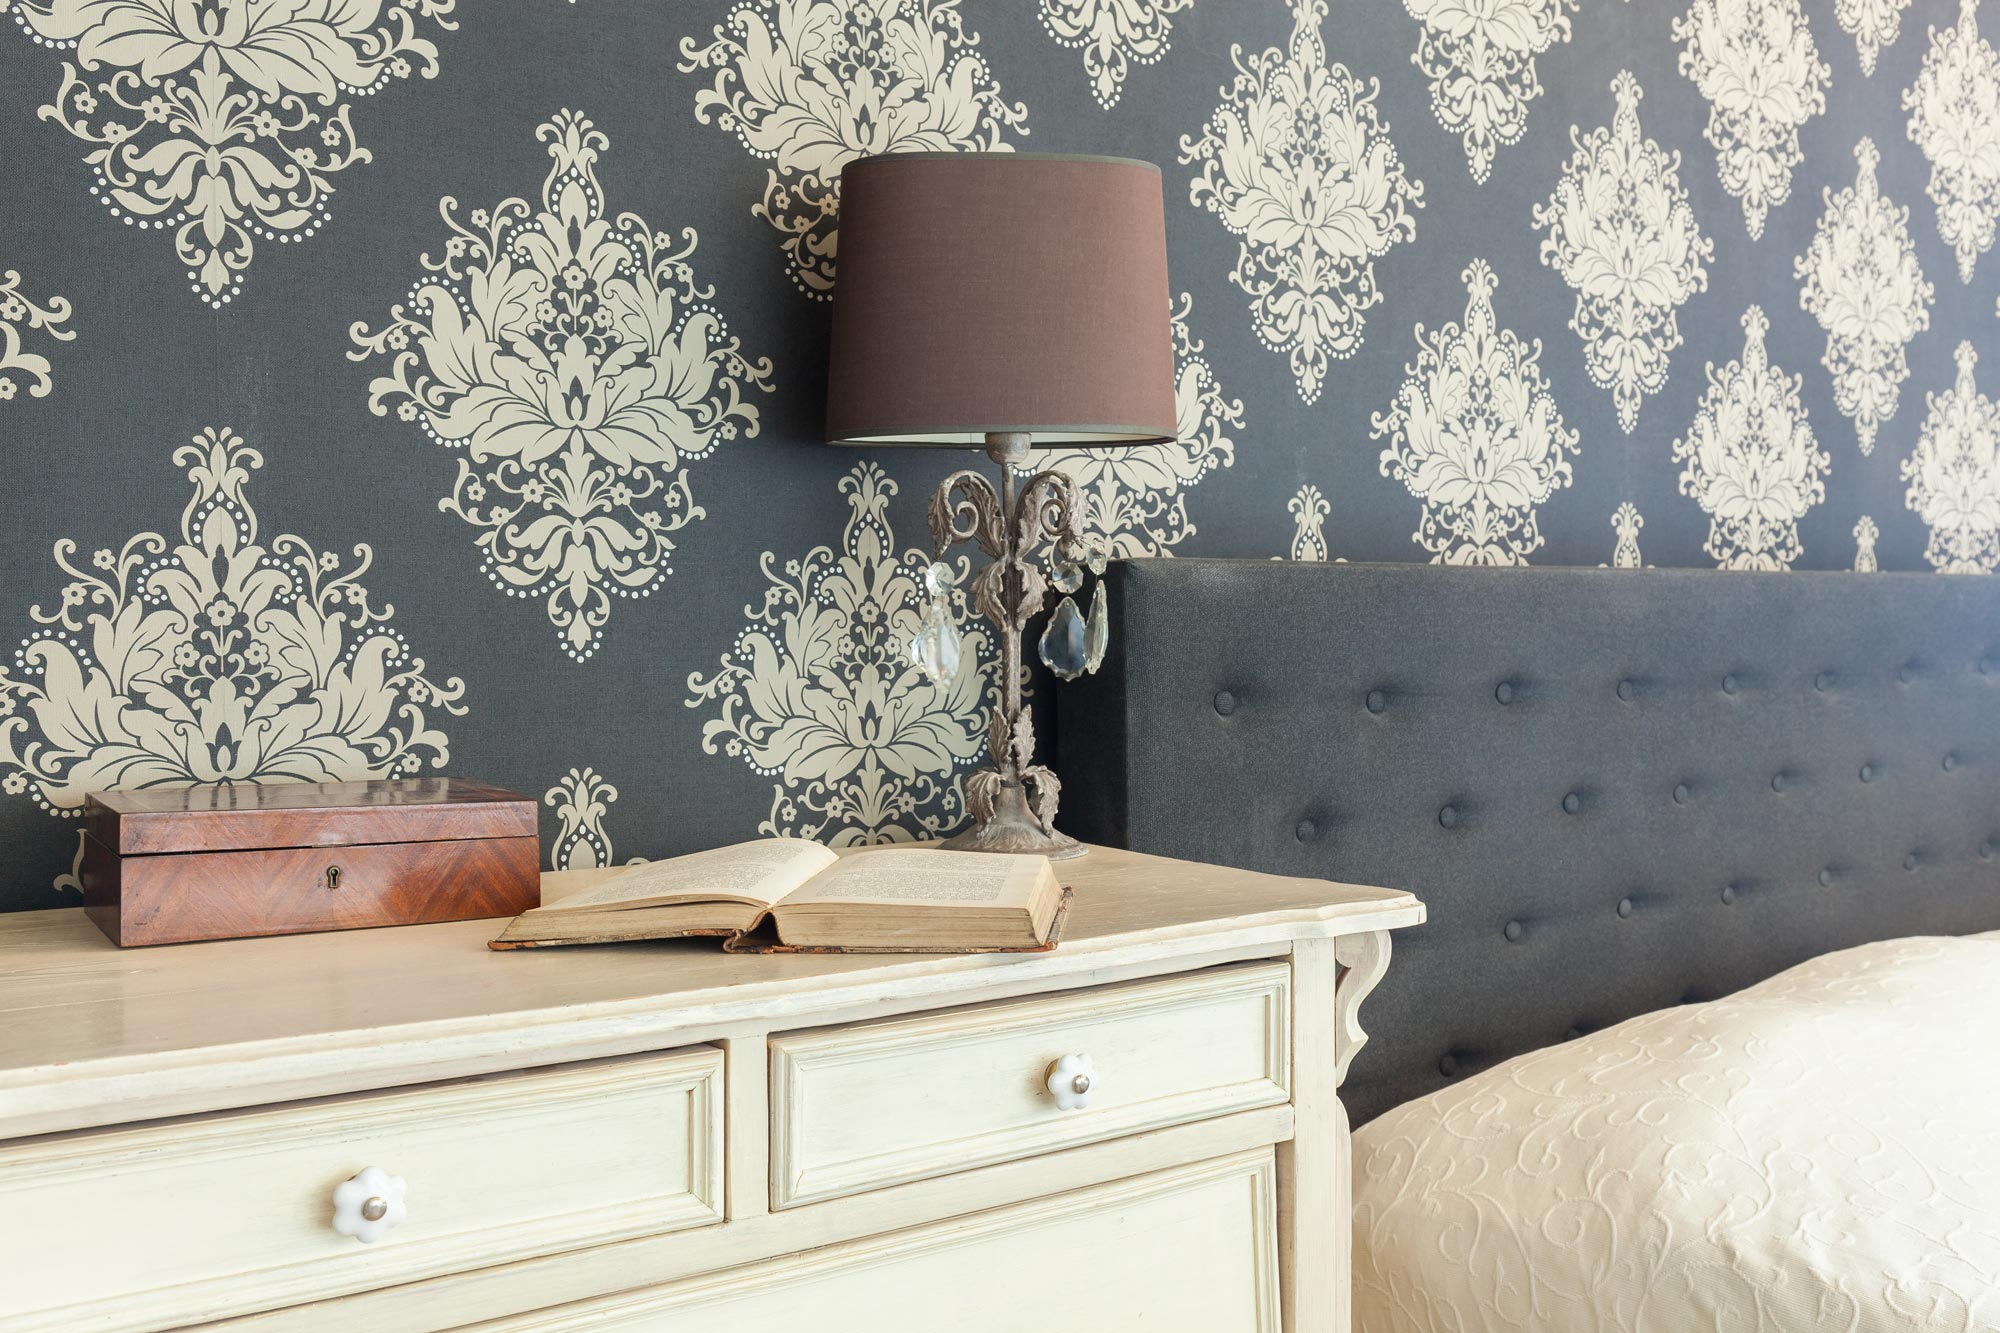 A close up pattern wallpaper of the bedroom behind of cream coloured cabinet with books and lamp